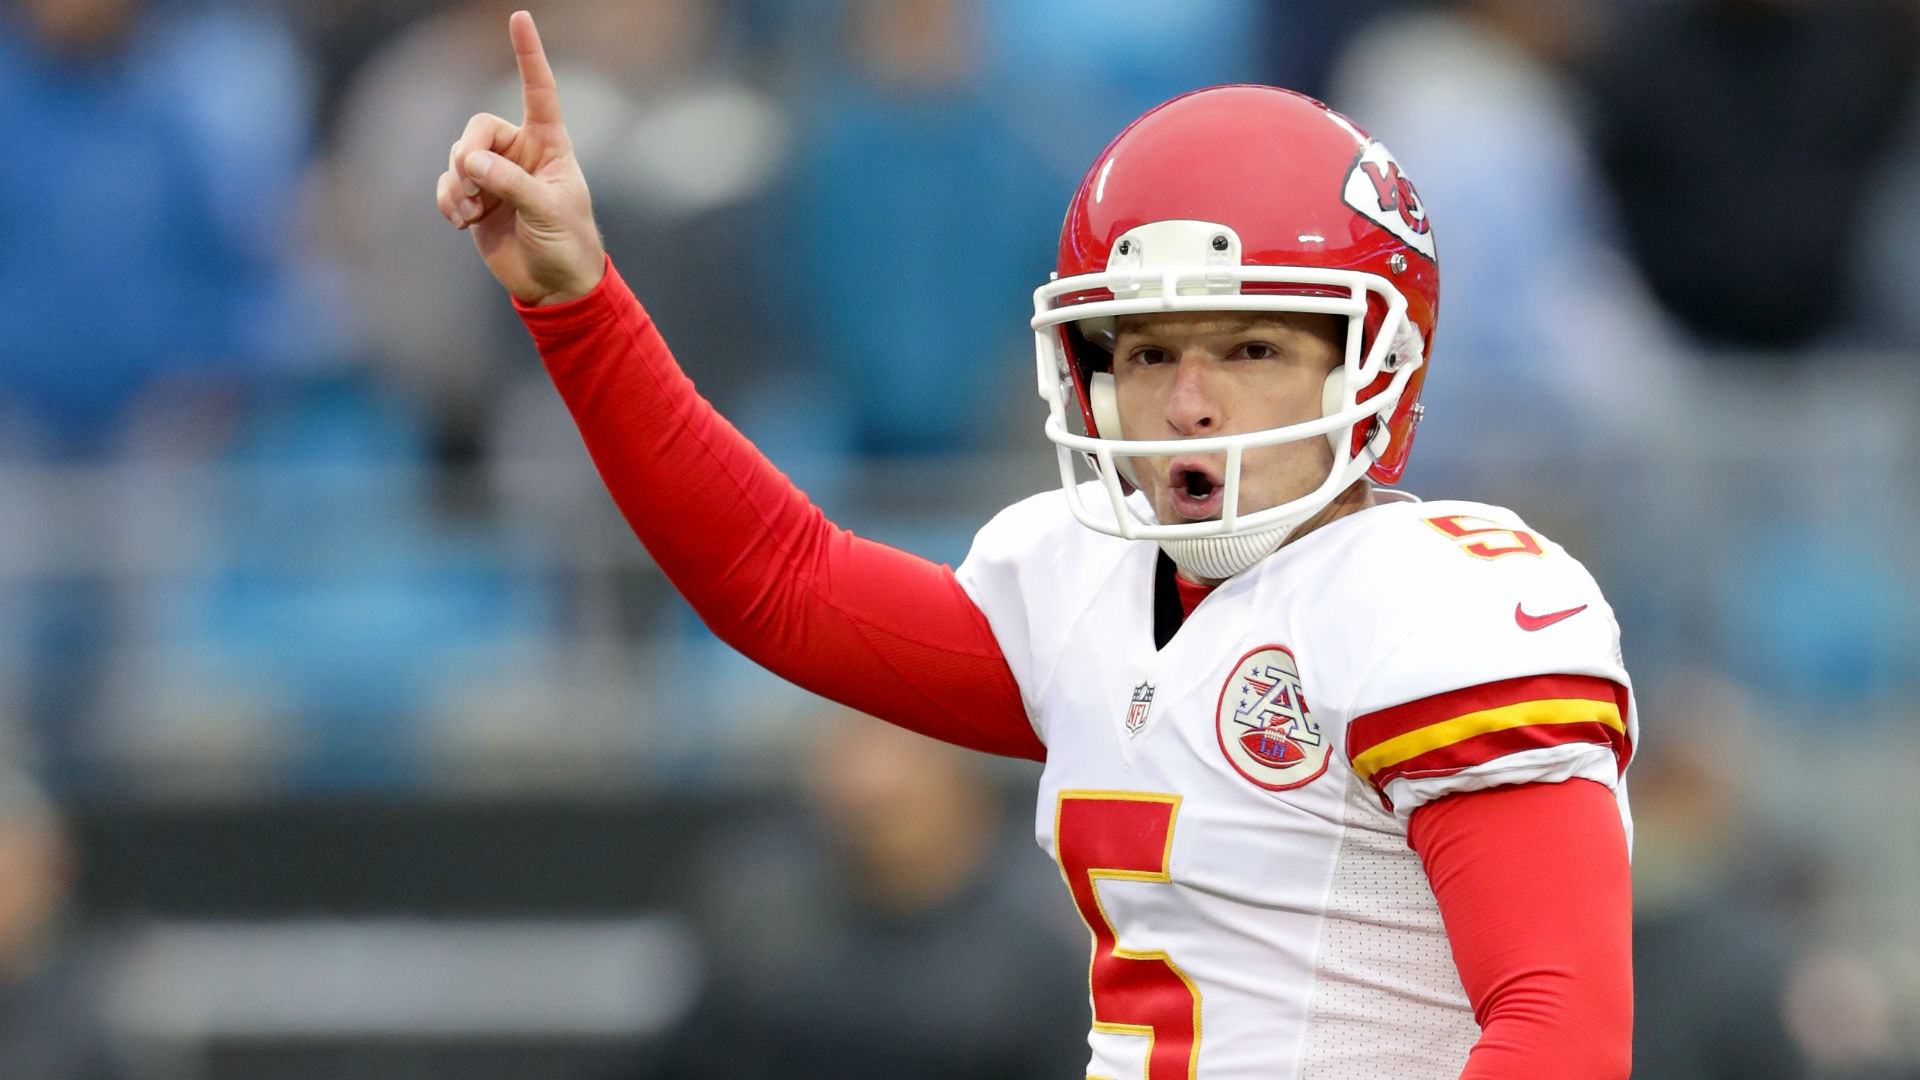 Chiefs place kicker on injured reserve